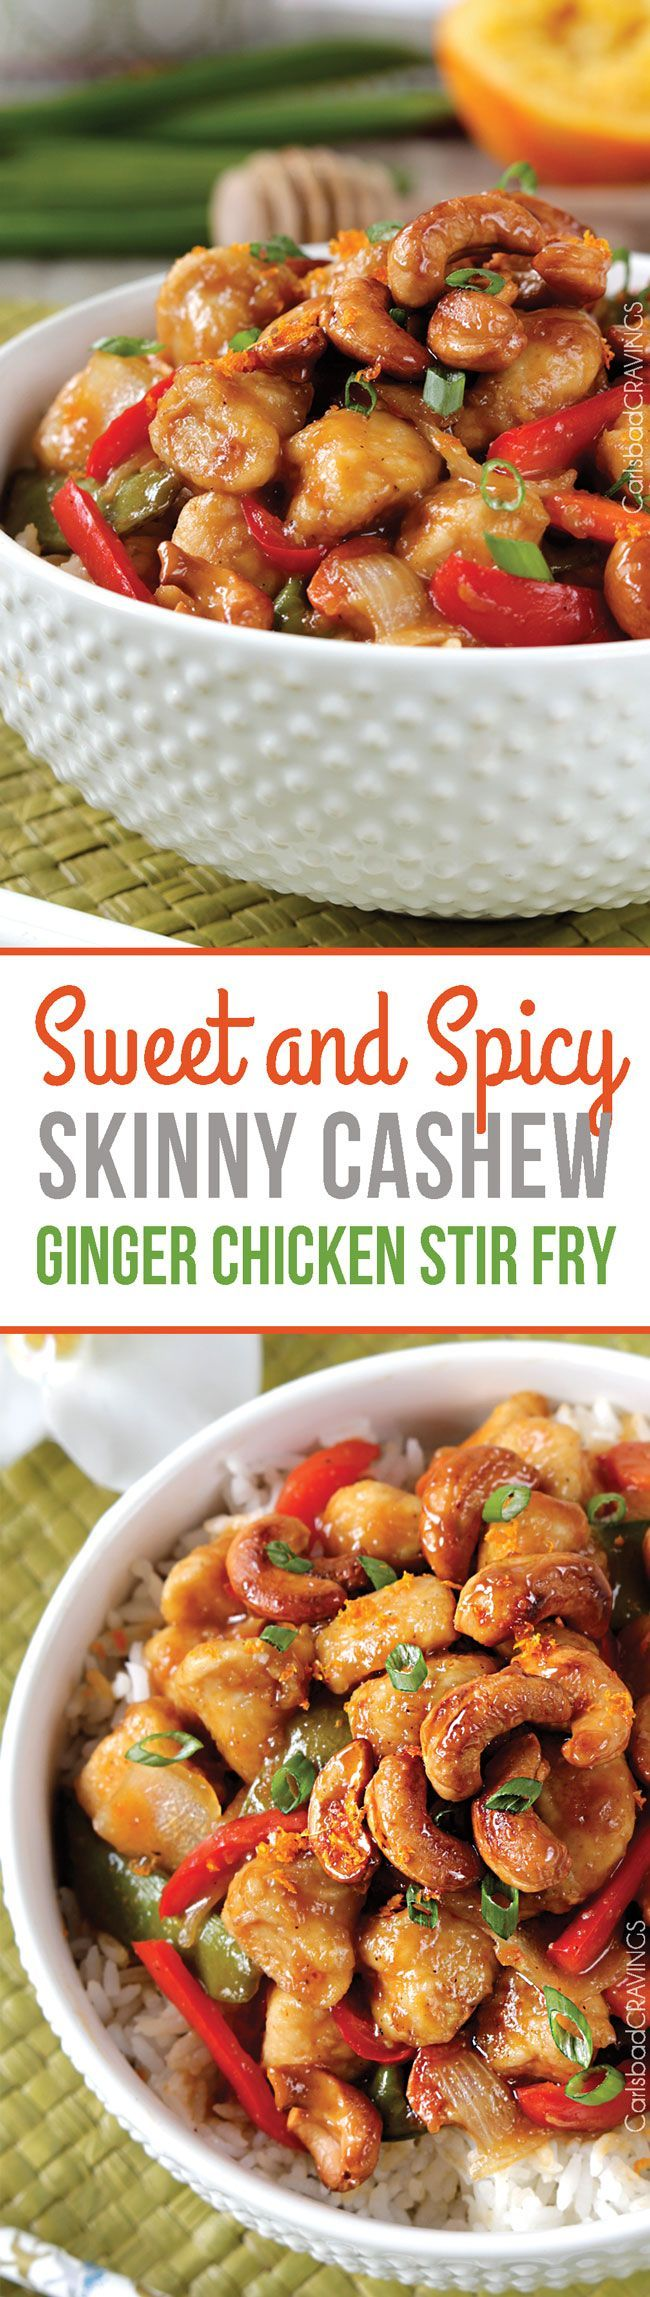 Skinny Sweet and Spicy Cashew Ginger Chicken Stir Fry - in your mouth in less than 30 minutes with CARAMELIZED cashews and the most incredible sauce!